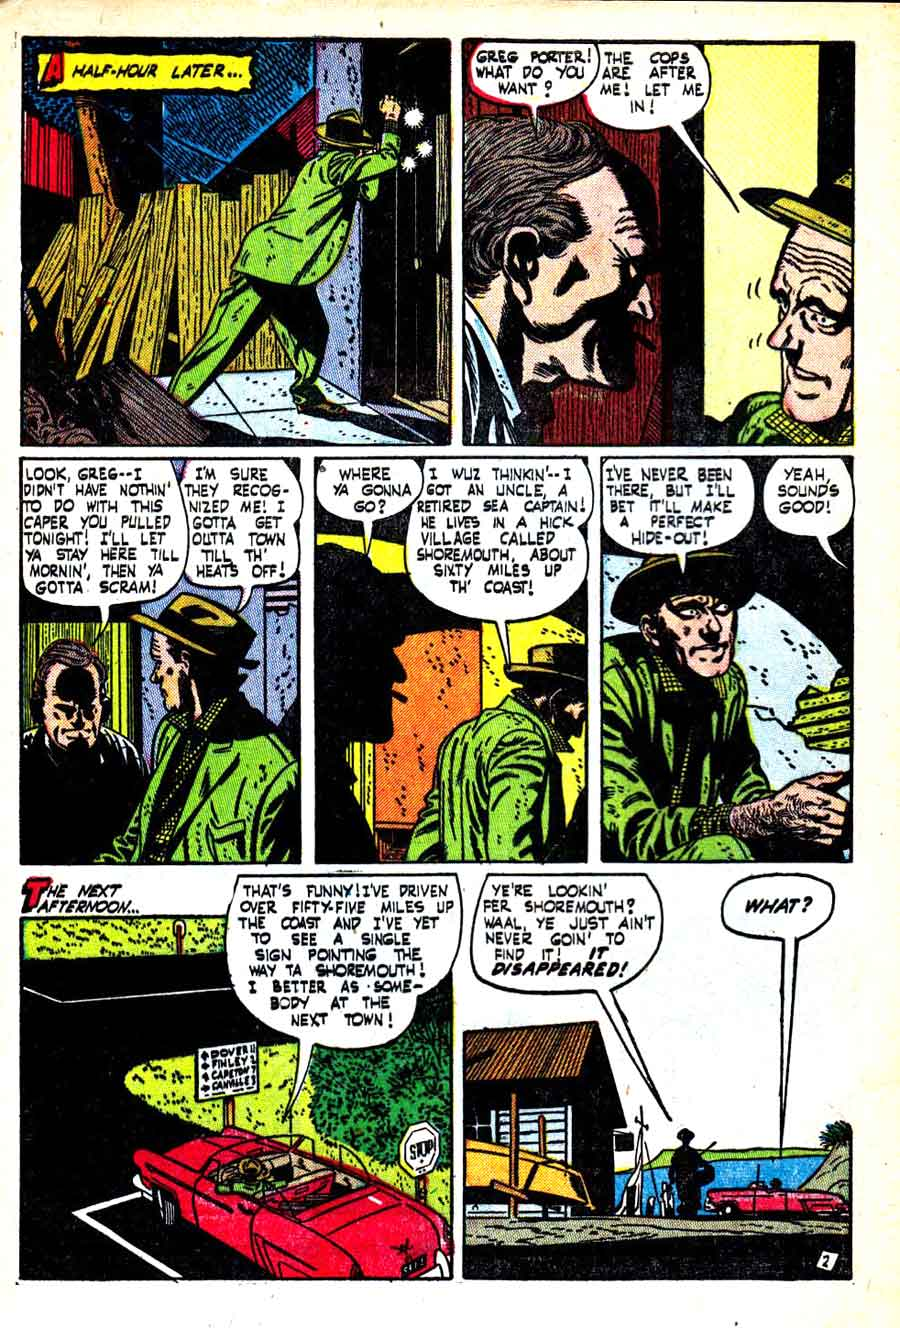 Out of the Shadows #5 Alex Toth 1950s standard horror comic book page art